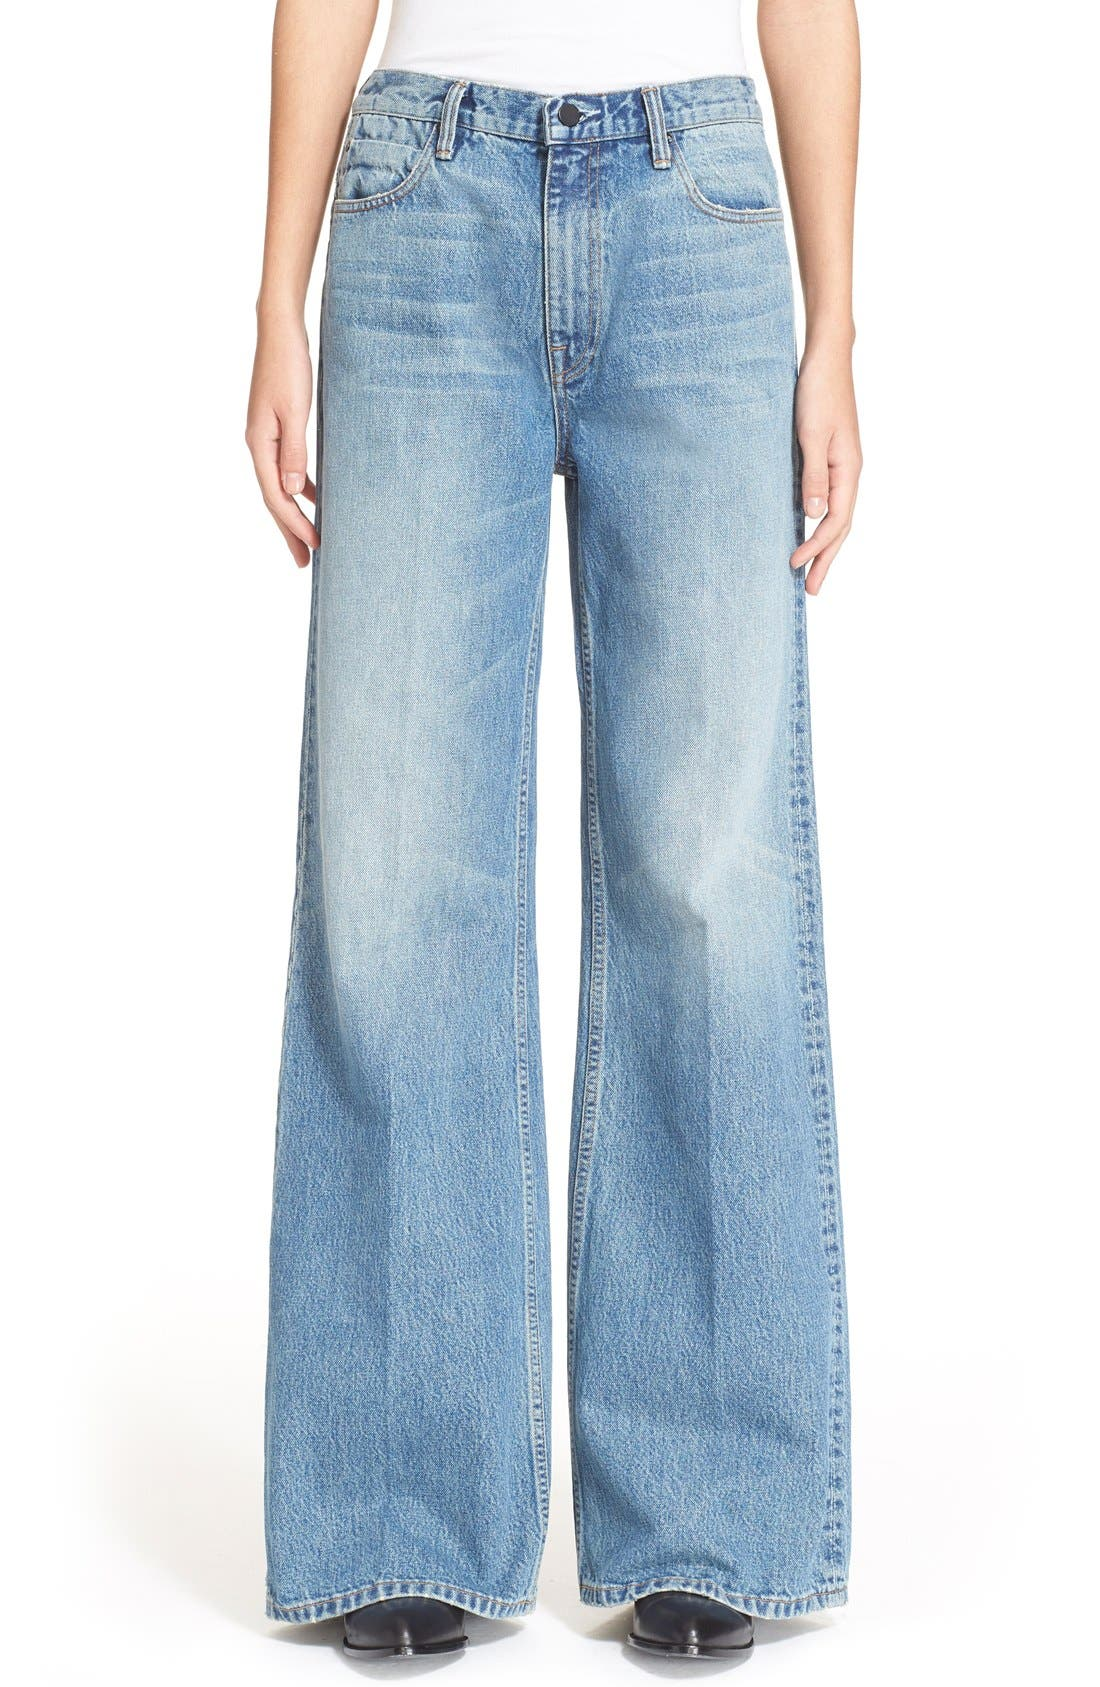 Denim x Alexander Wang Rave Wide Leg Jeans,                         Main,                         color, 453